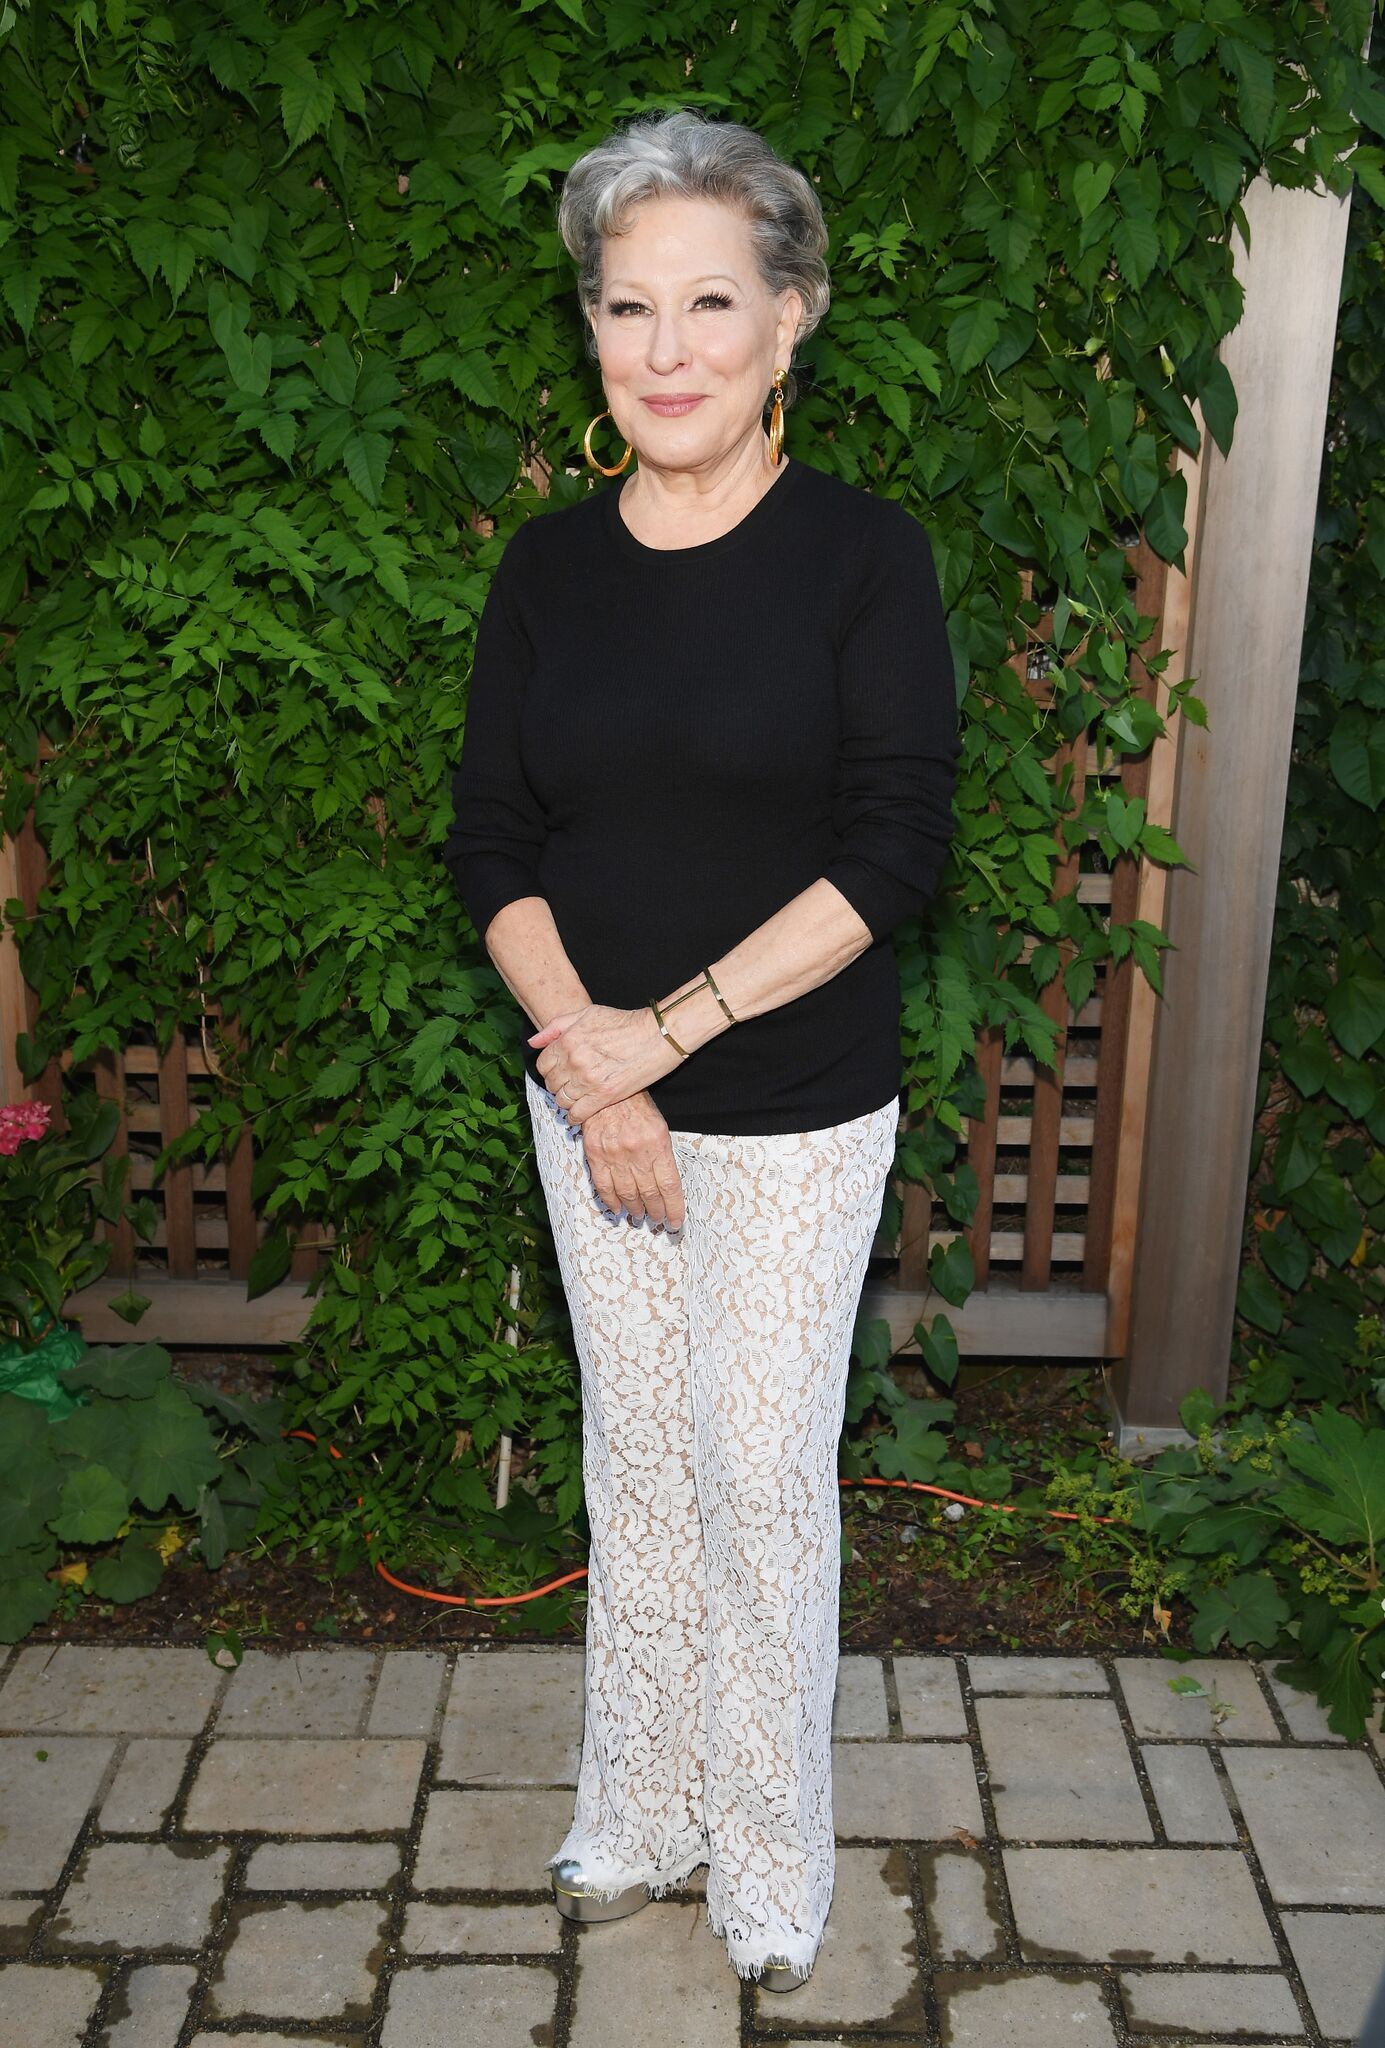 Bette Midler attends as Michael Kors and the New York Restoration Project Celebrate The Opening Of The Essex Street Community Garden | Getty Images / Global Images Ukraine